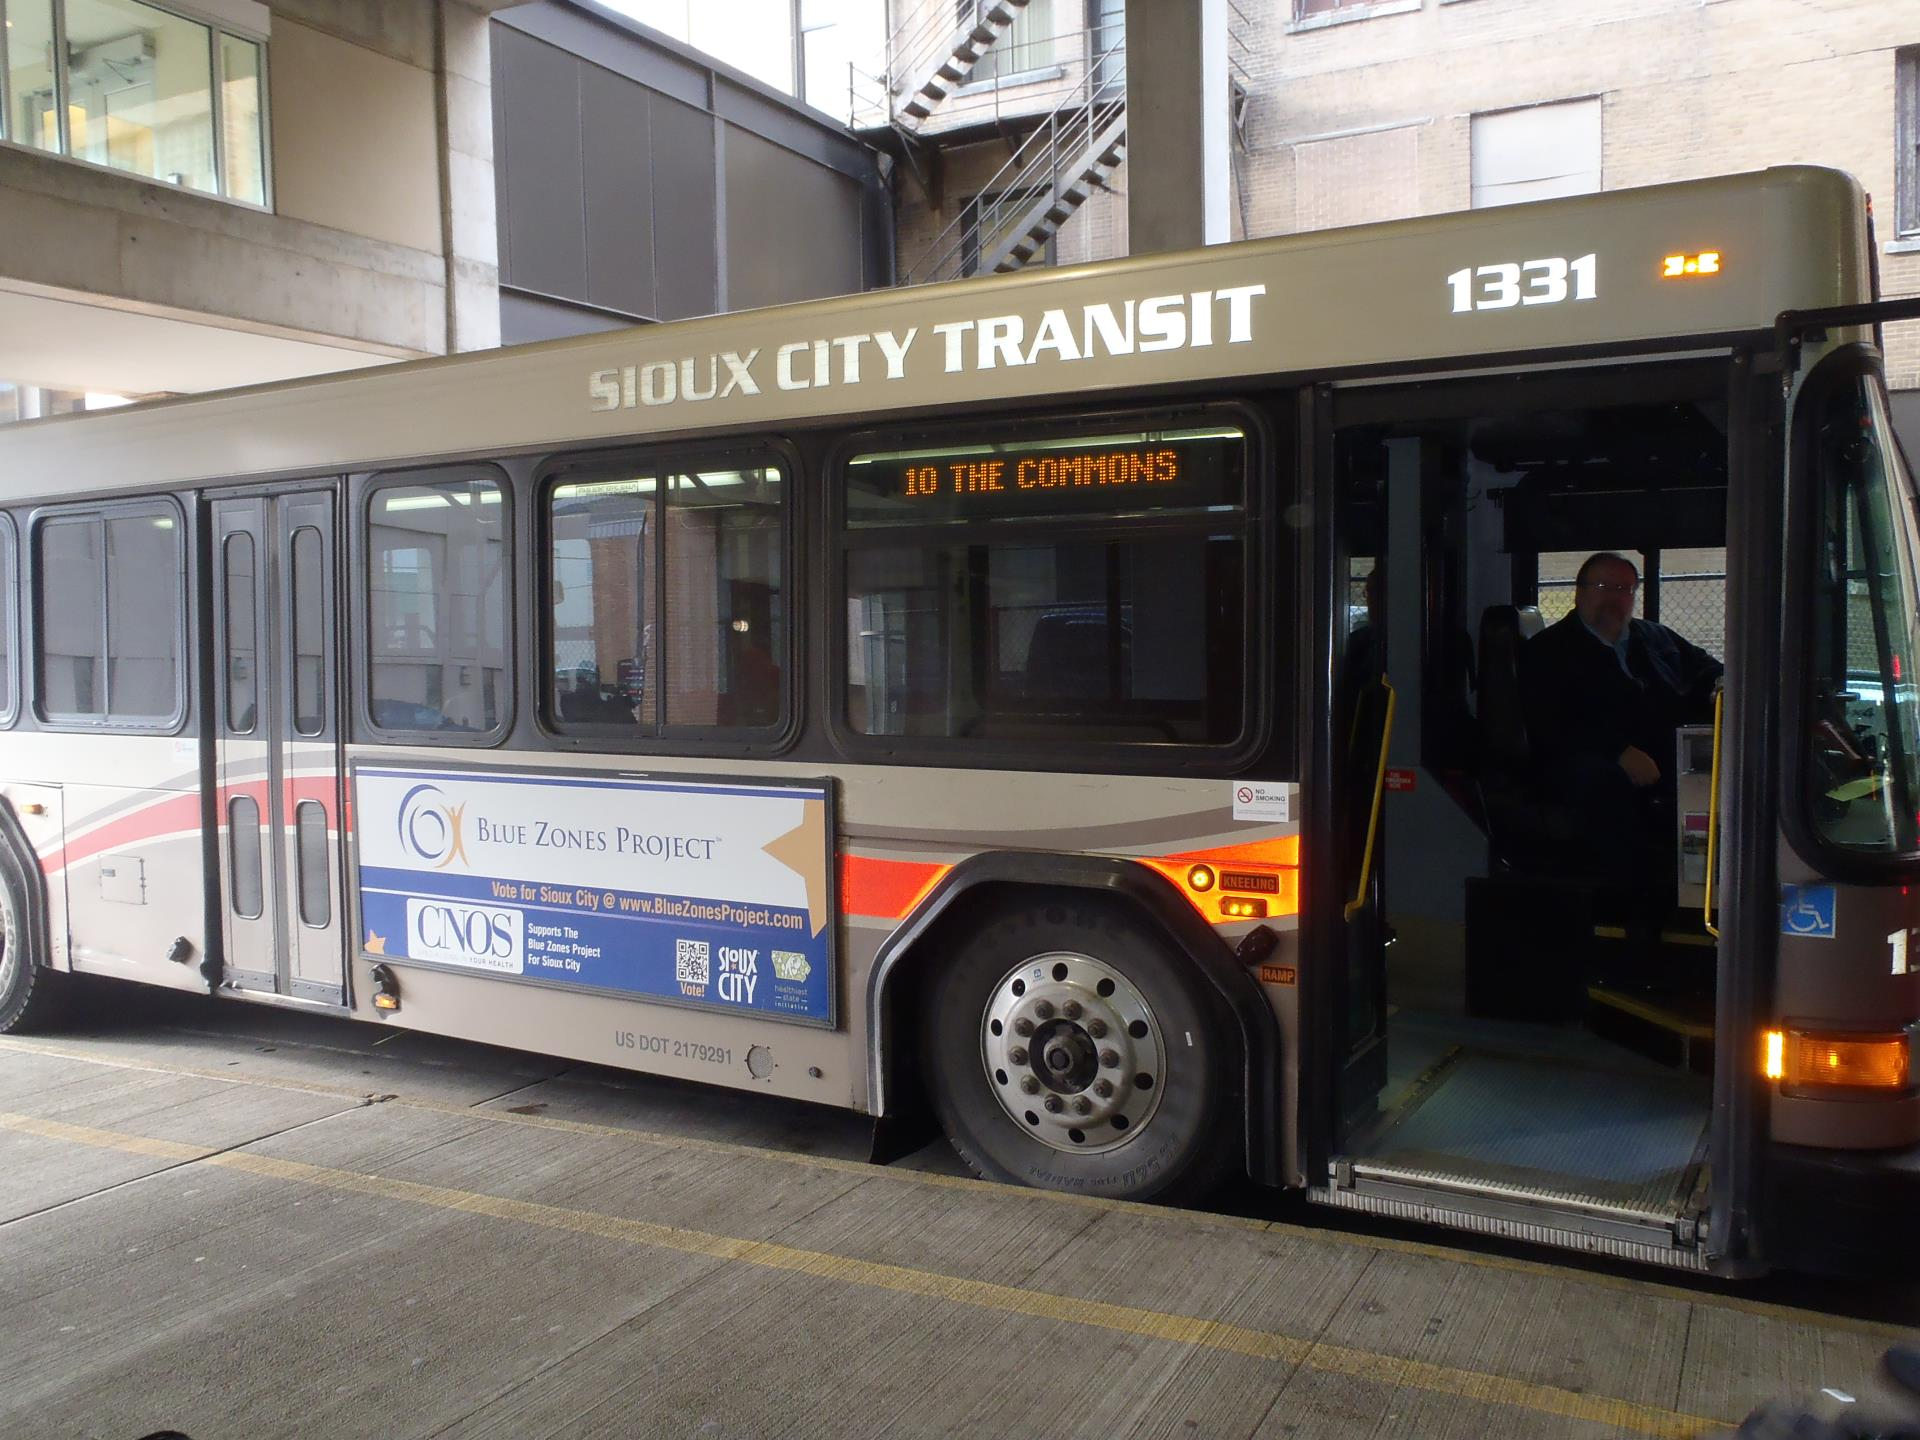 transit | city of sioux city website